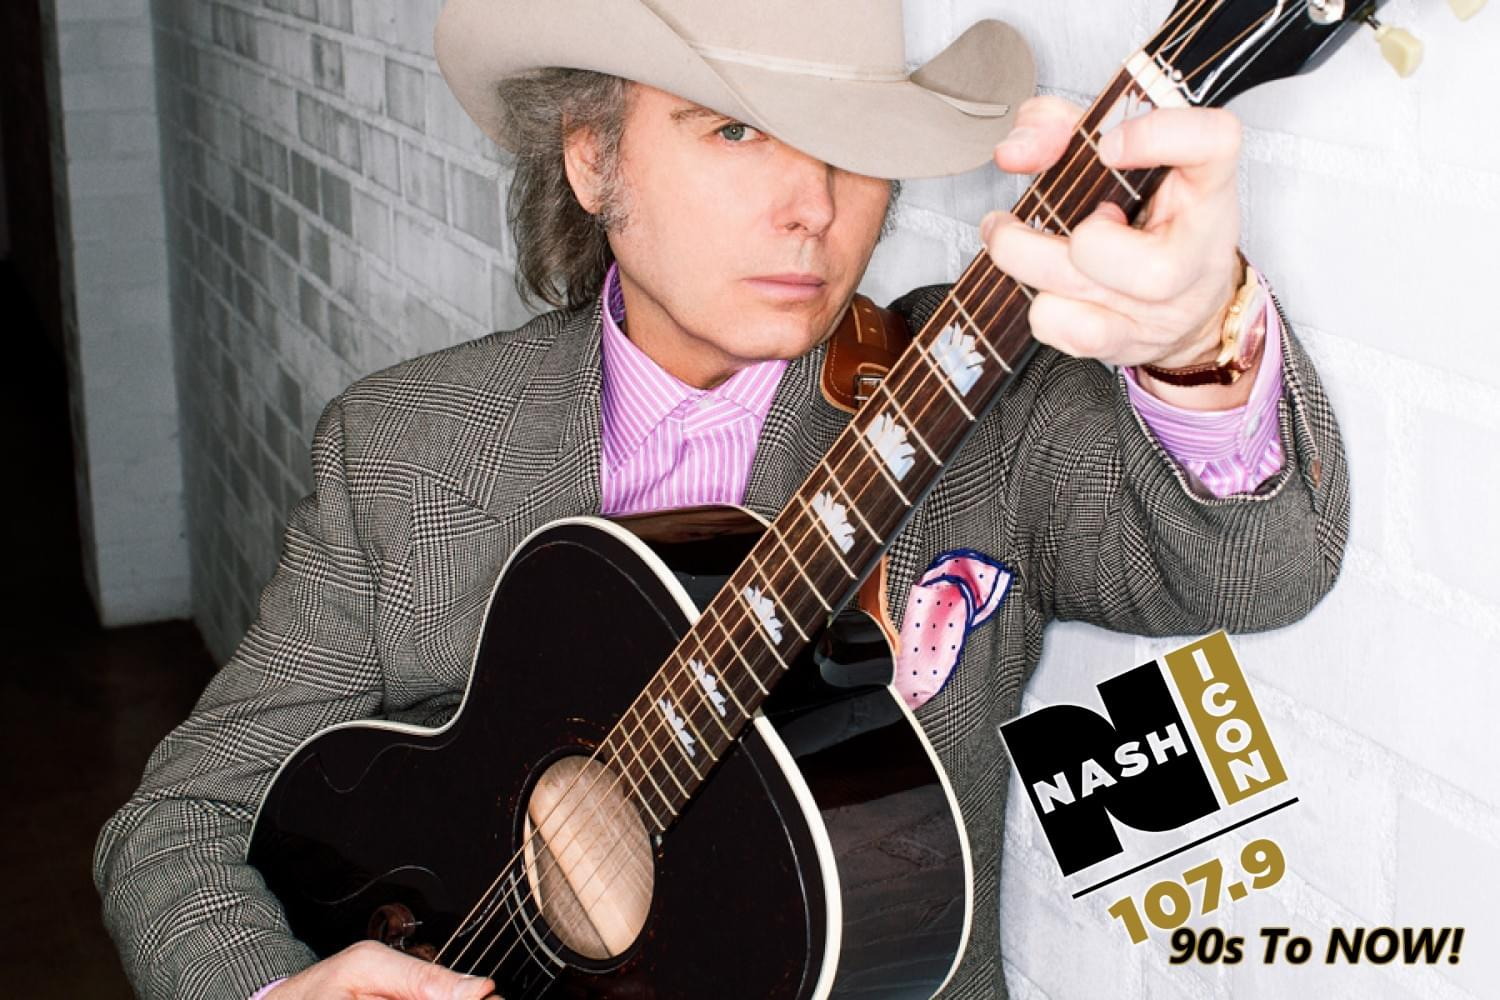 September 10, Dwight Yoakam @ Tivoli Theater